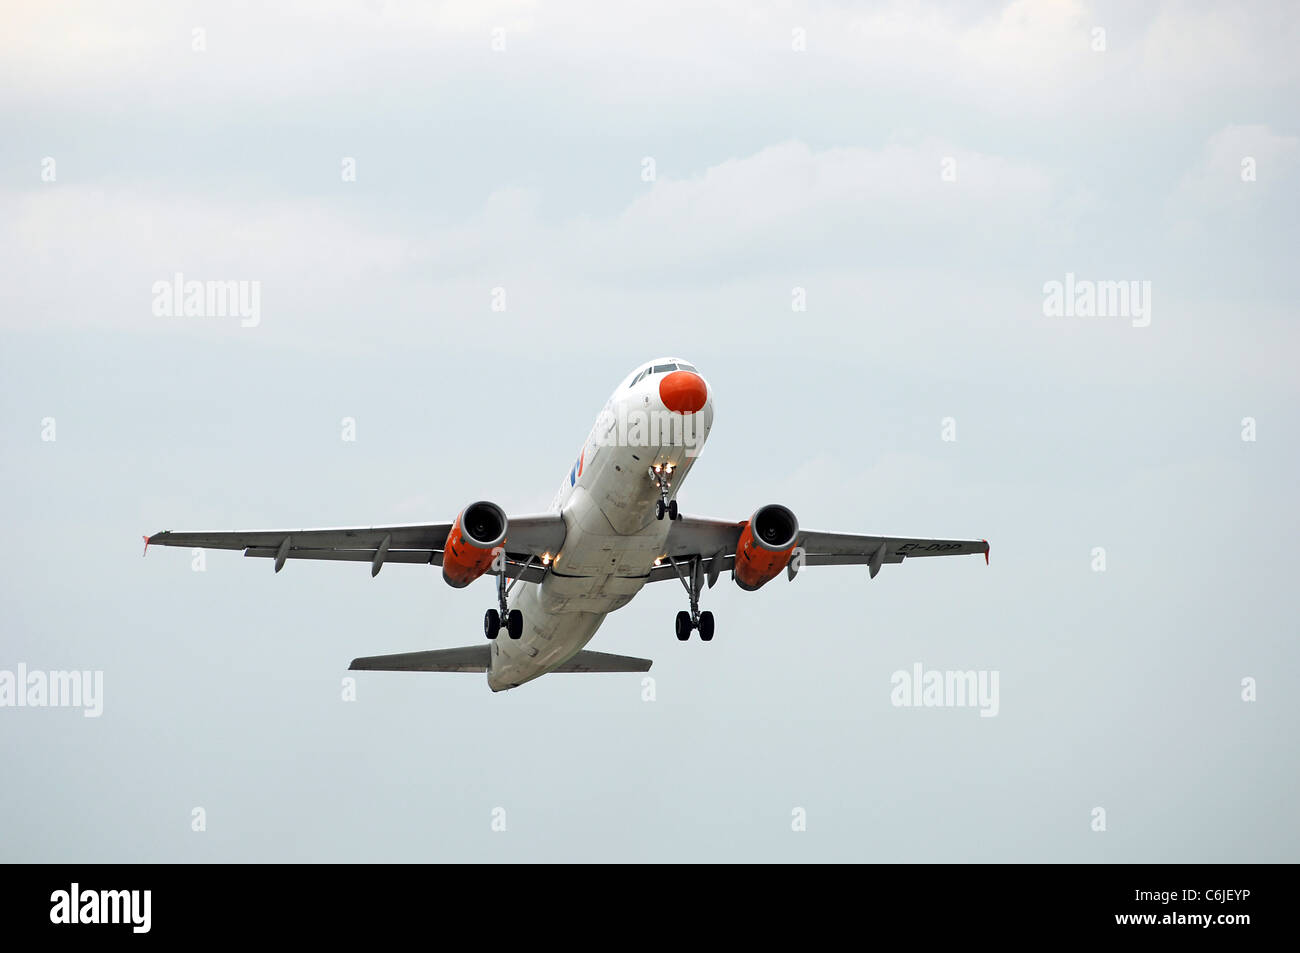 A320 Livingston airliner take off - Stock Image